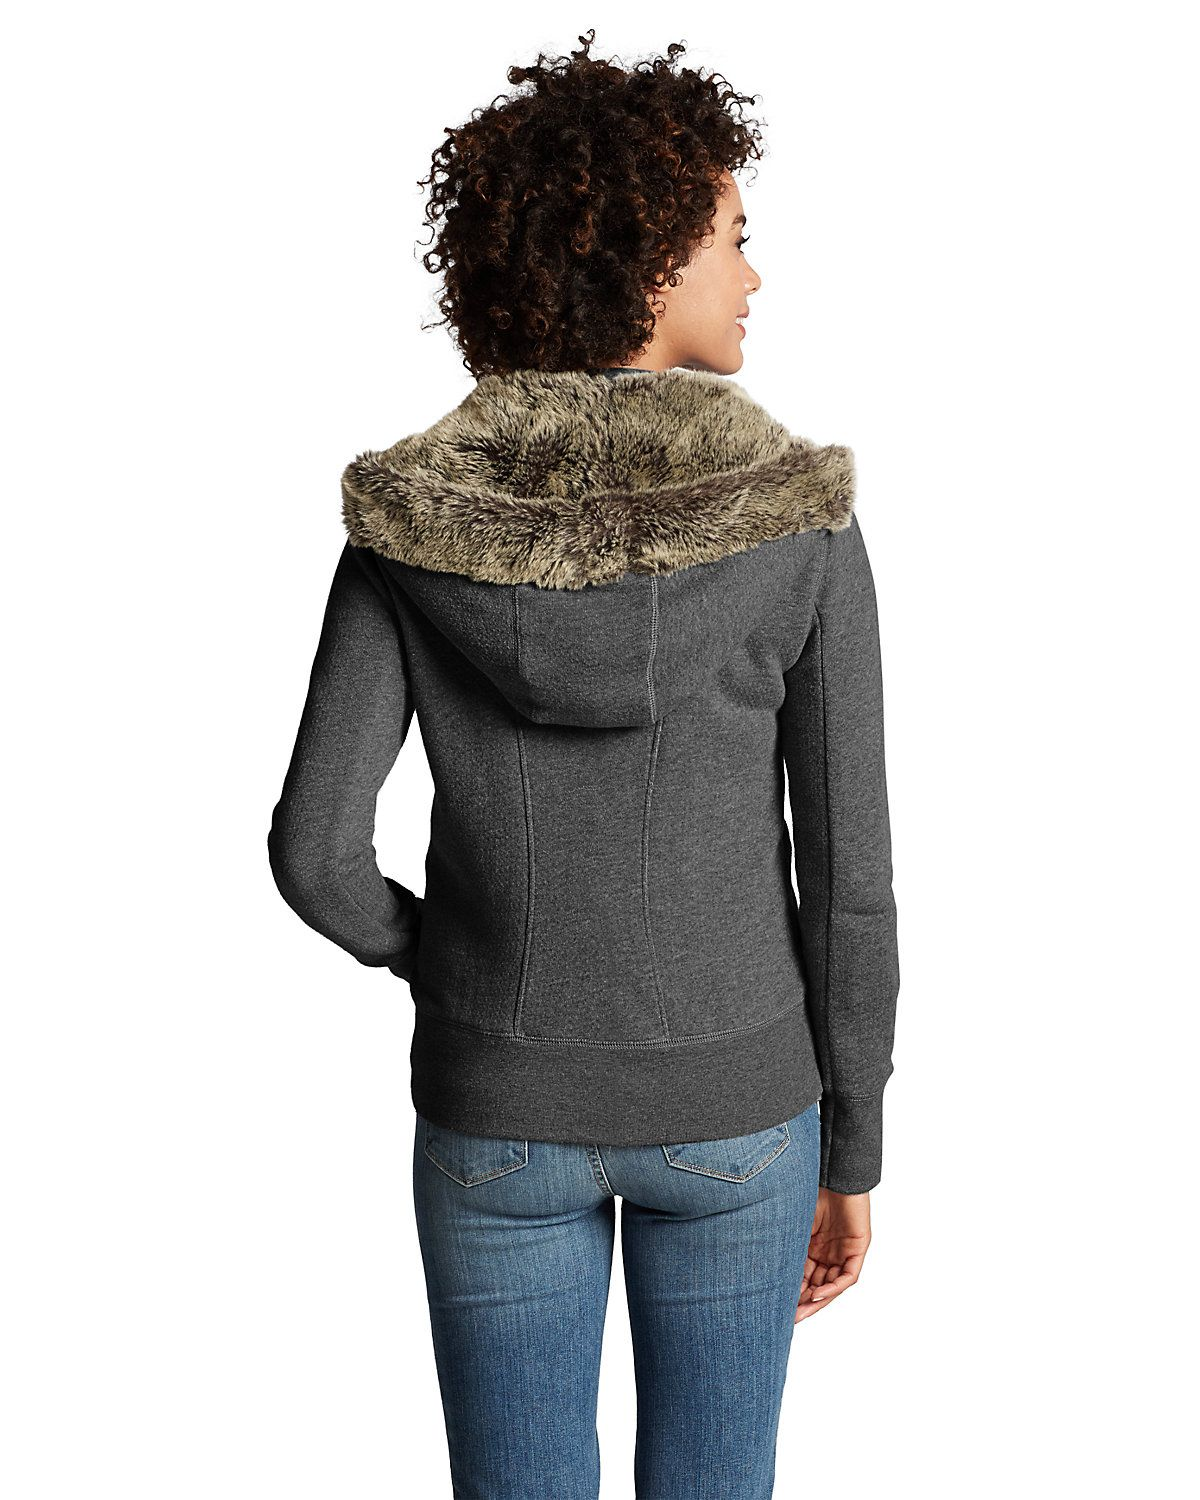 Womenus chill out fleece jacket eddie bauer fashion wishlist